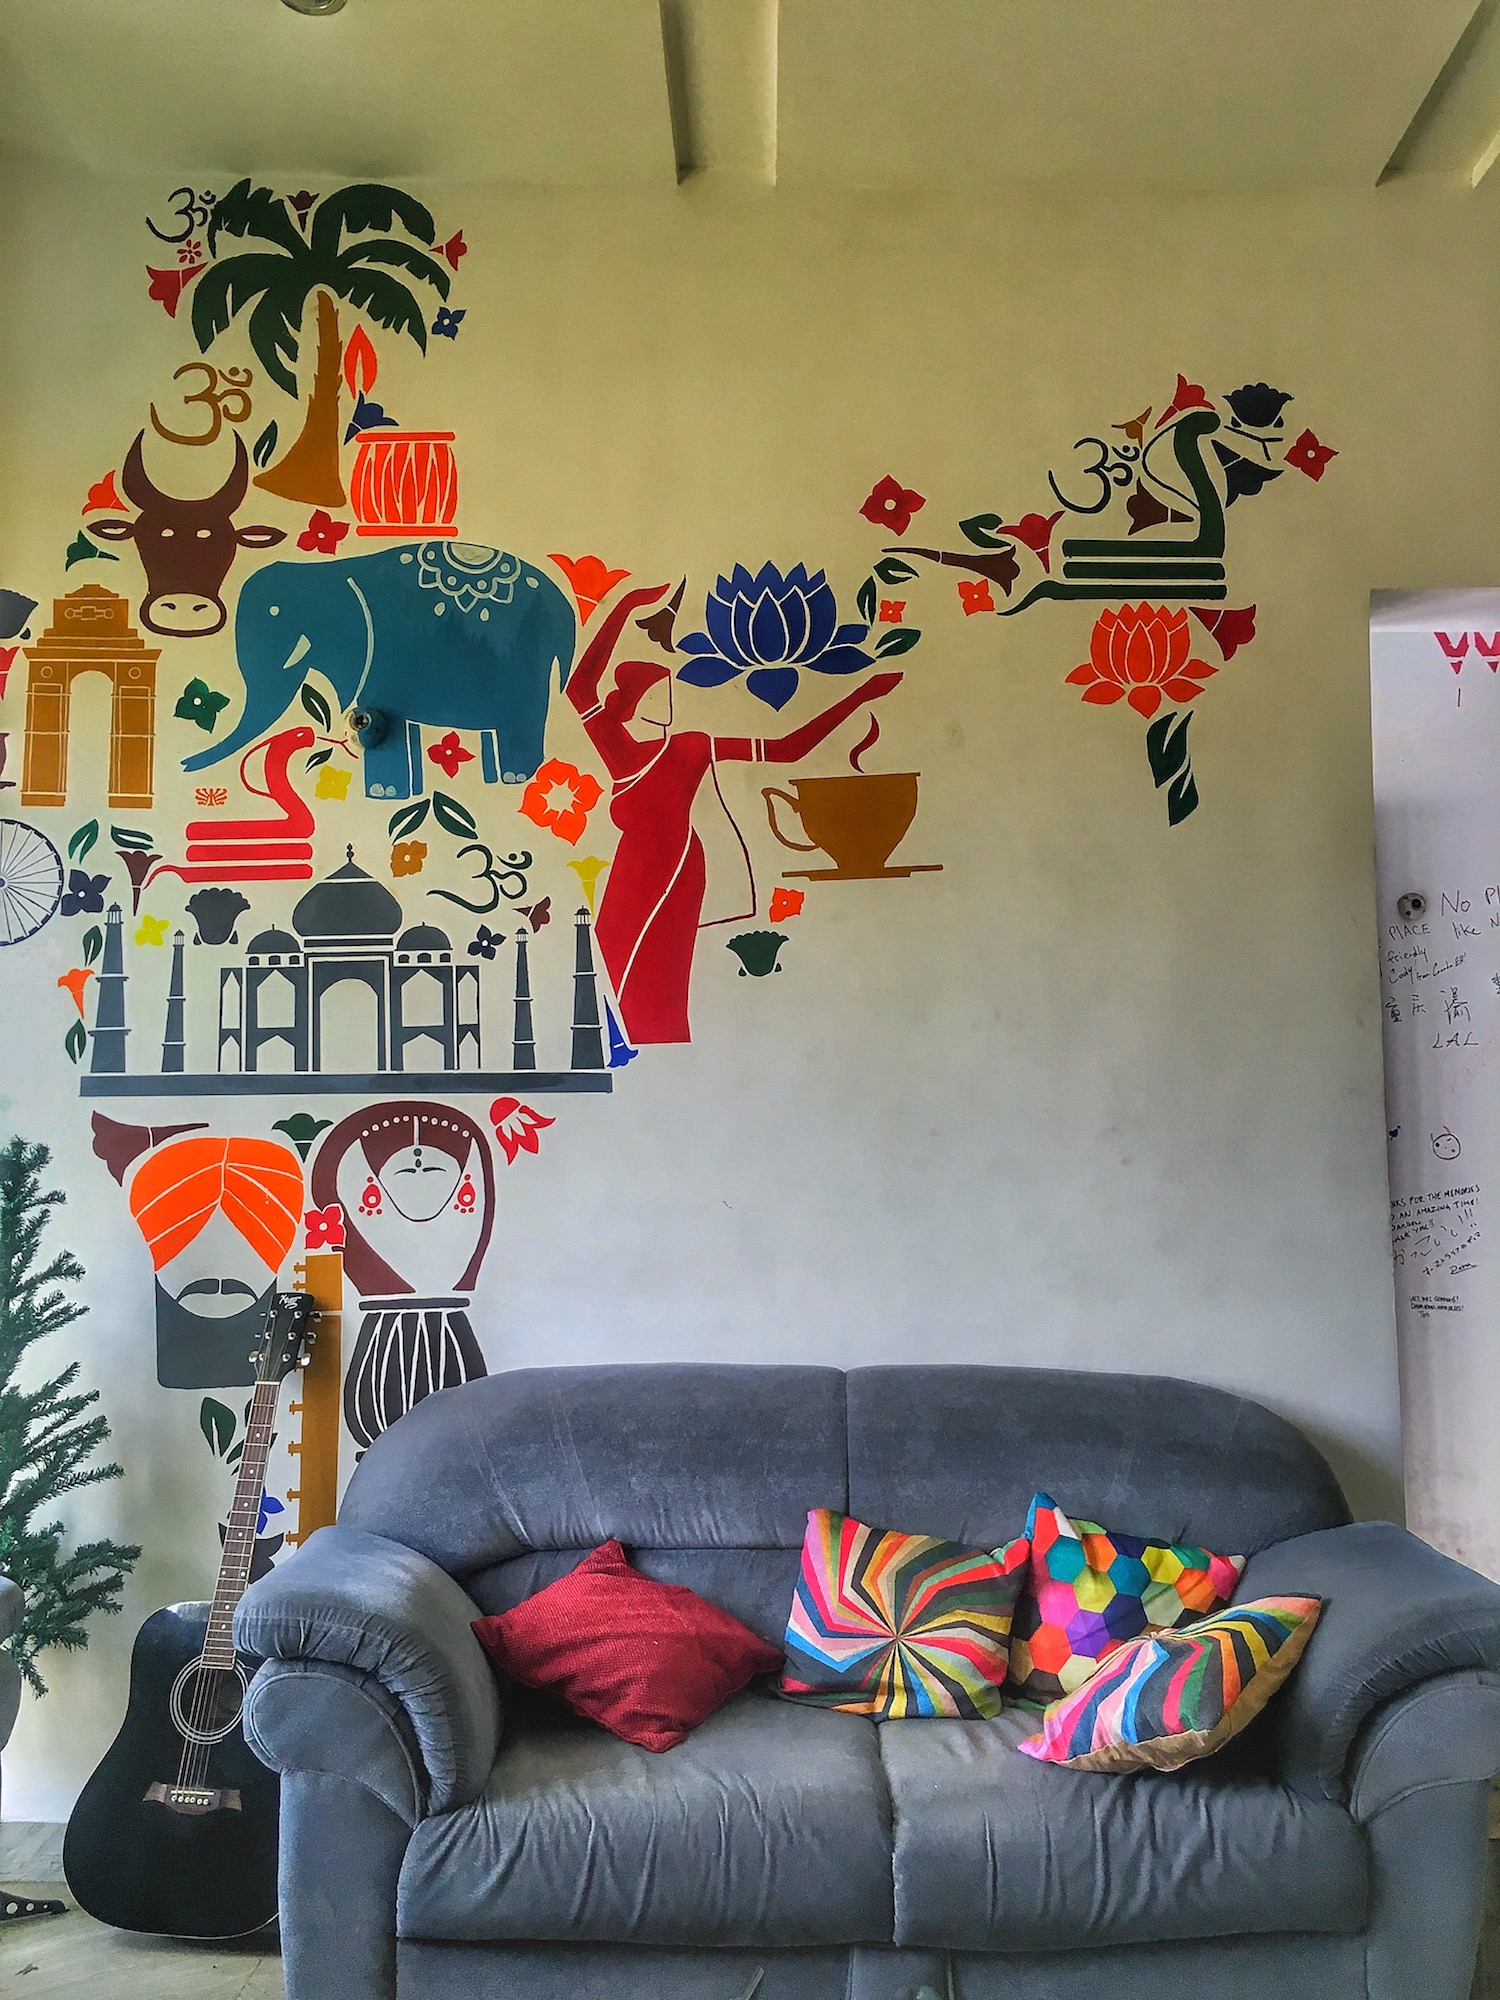 nomads-hostel-amritsar-review.jpg